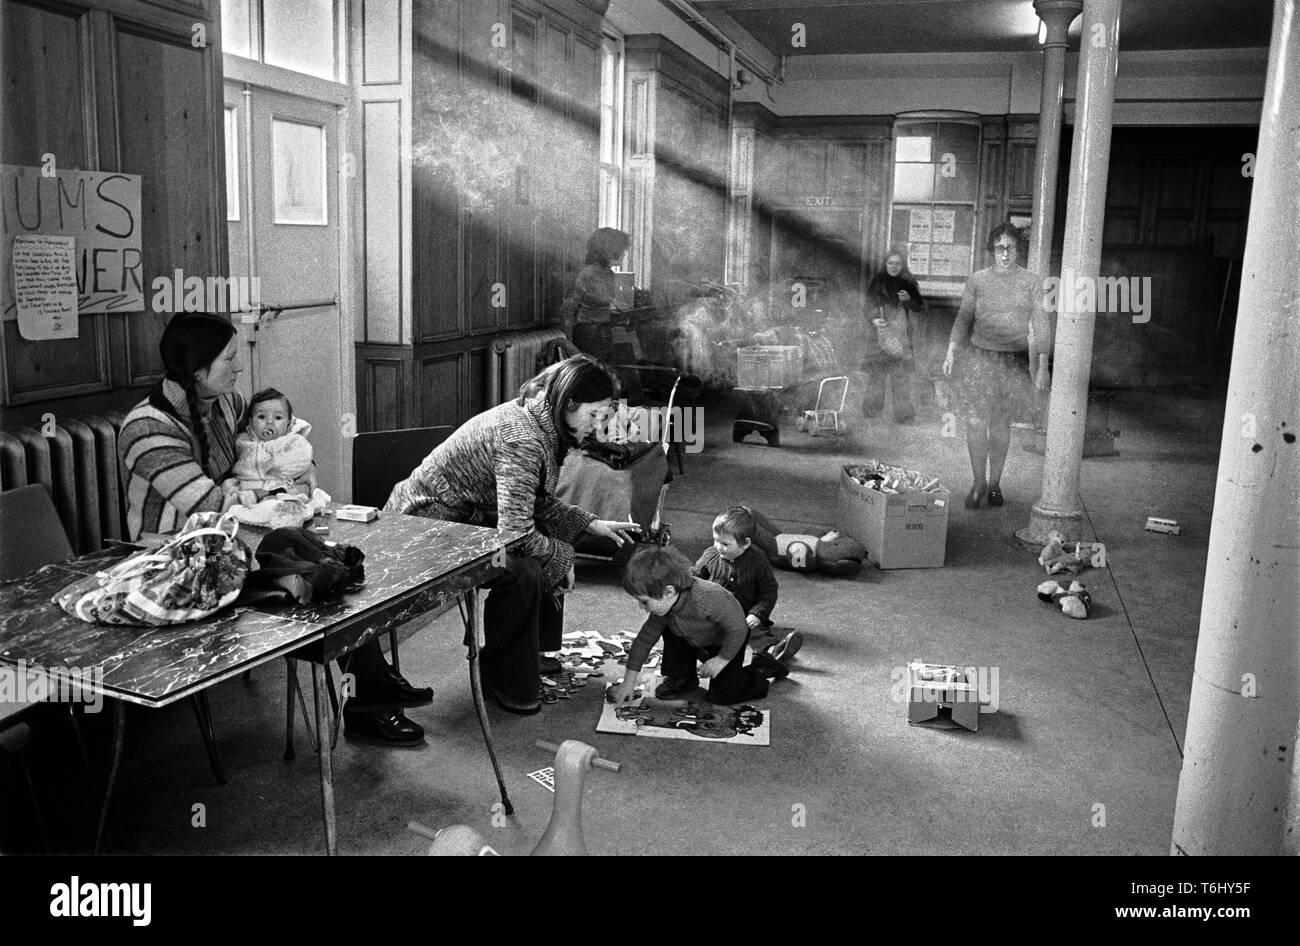 44/5 Tower Hamlets Mansford St Playgroup Bethnal Green 1978 - Stock Image